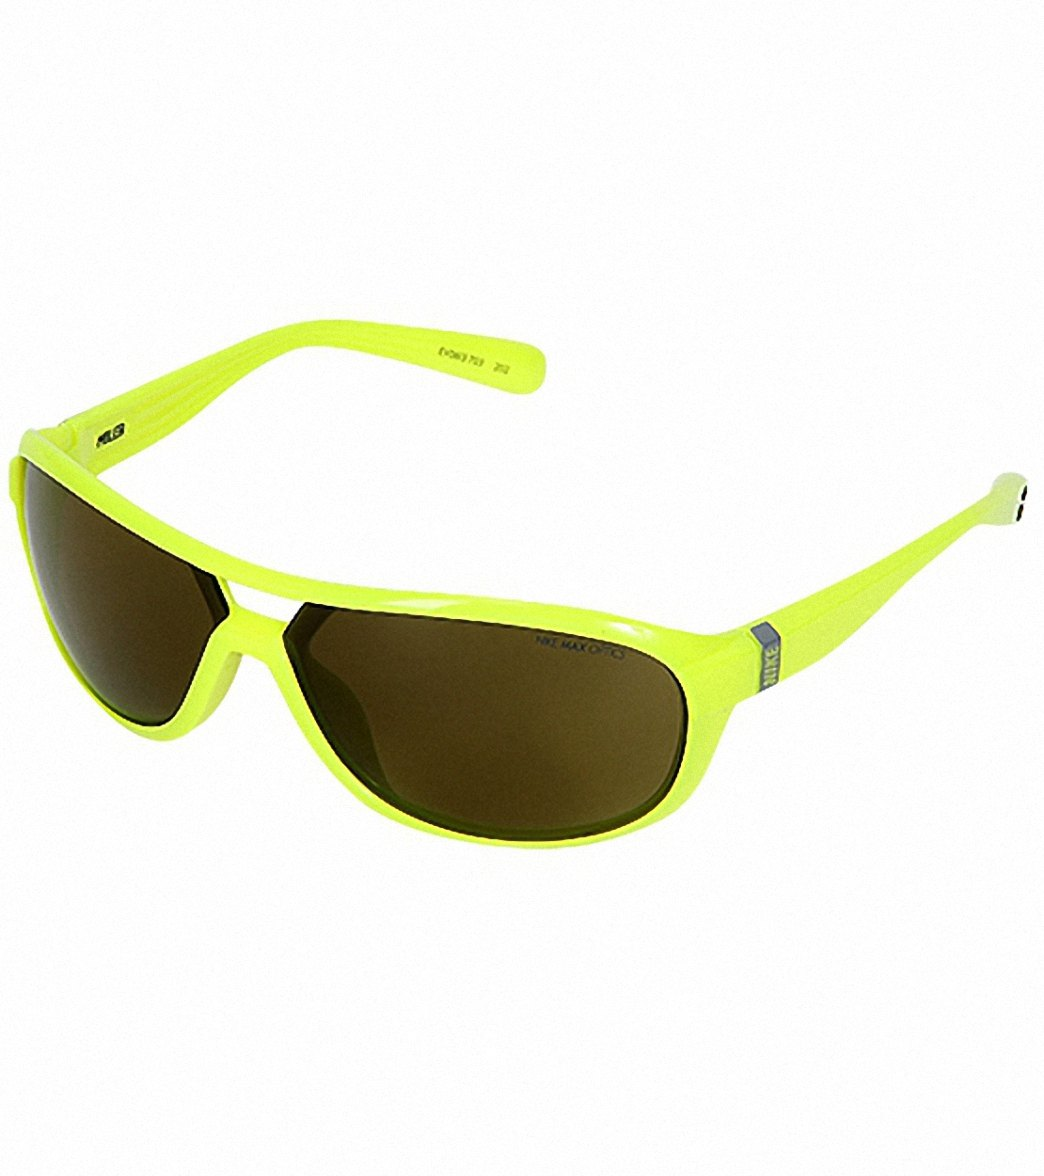 1cd29841fb6 Nike Miler Running Sunglasses at SwimOutlet.com - Free Shipping